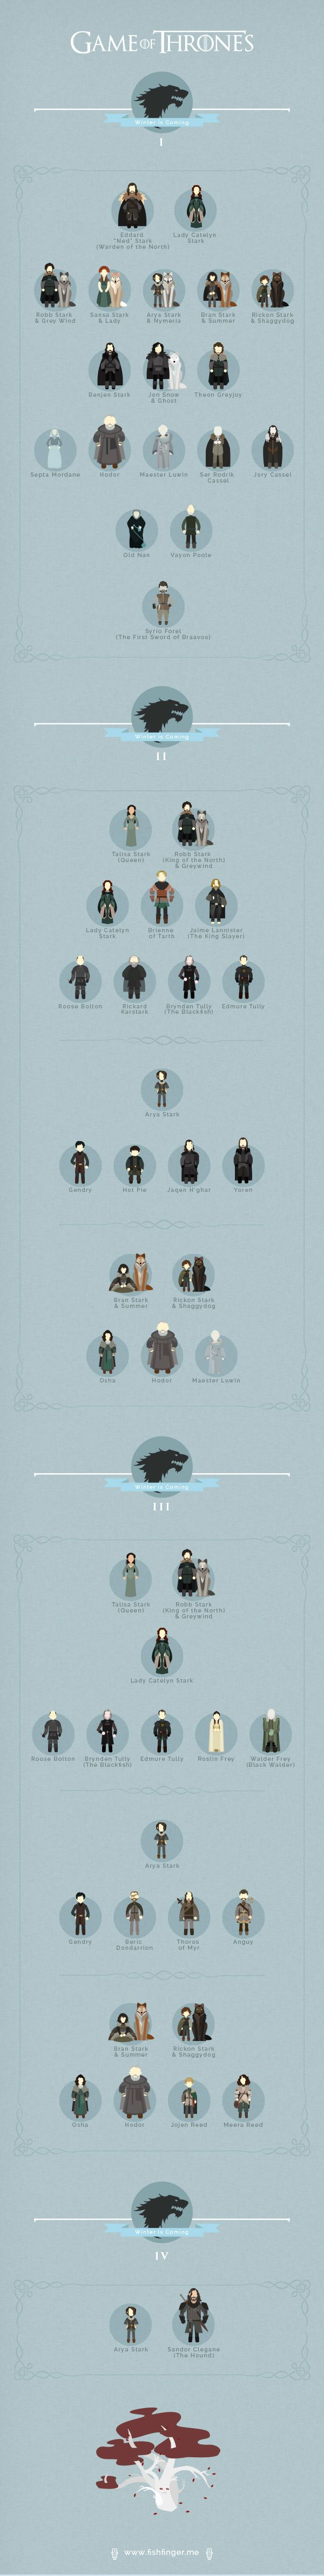 Game of Thrones Infographic - Stark - Graphicblog